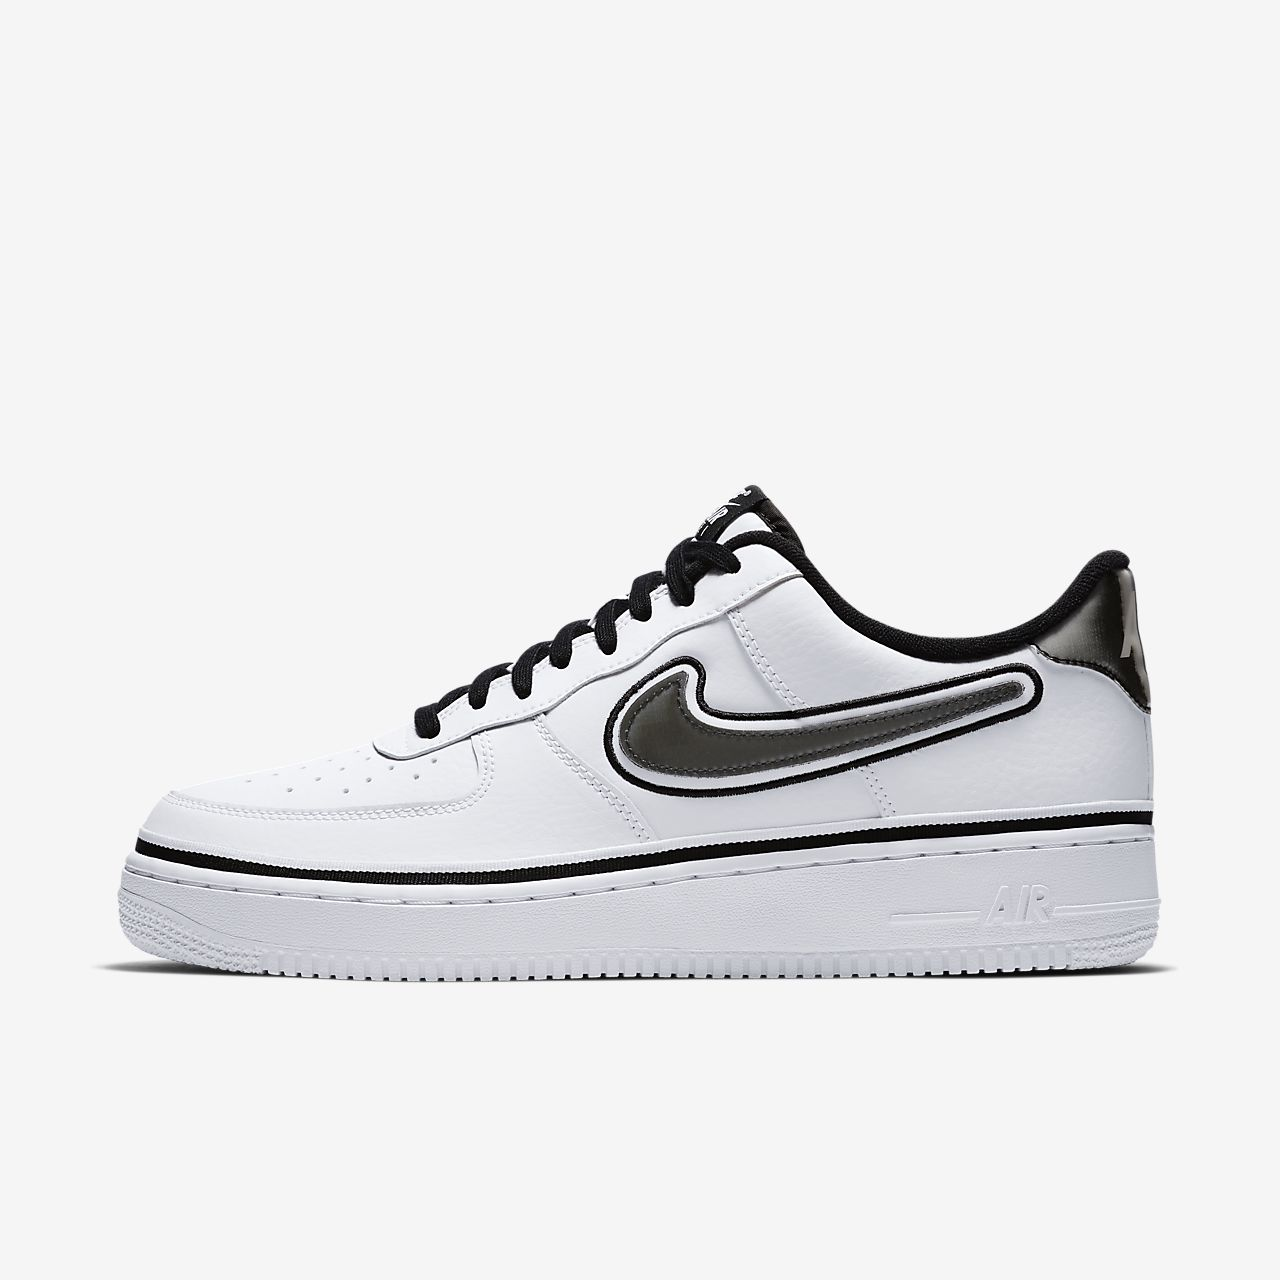 Chaussure Nike Air Force 1 '07 LV8 Sport NBA pour Homme